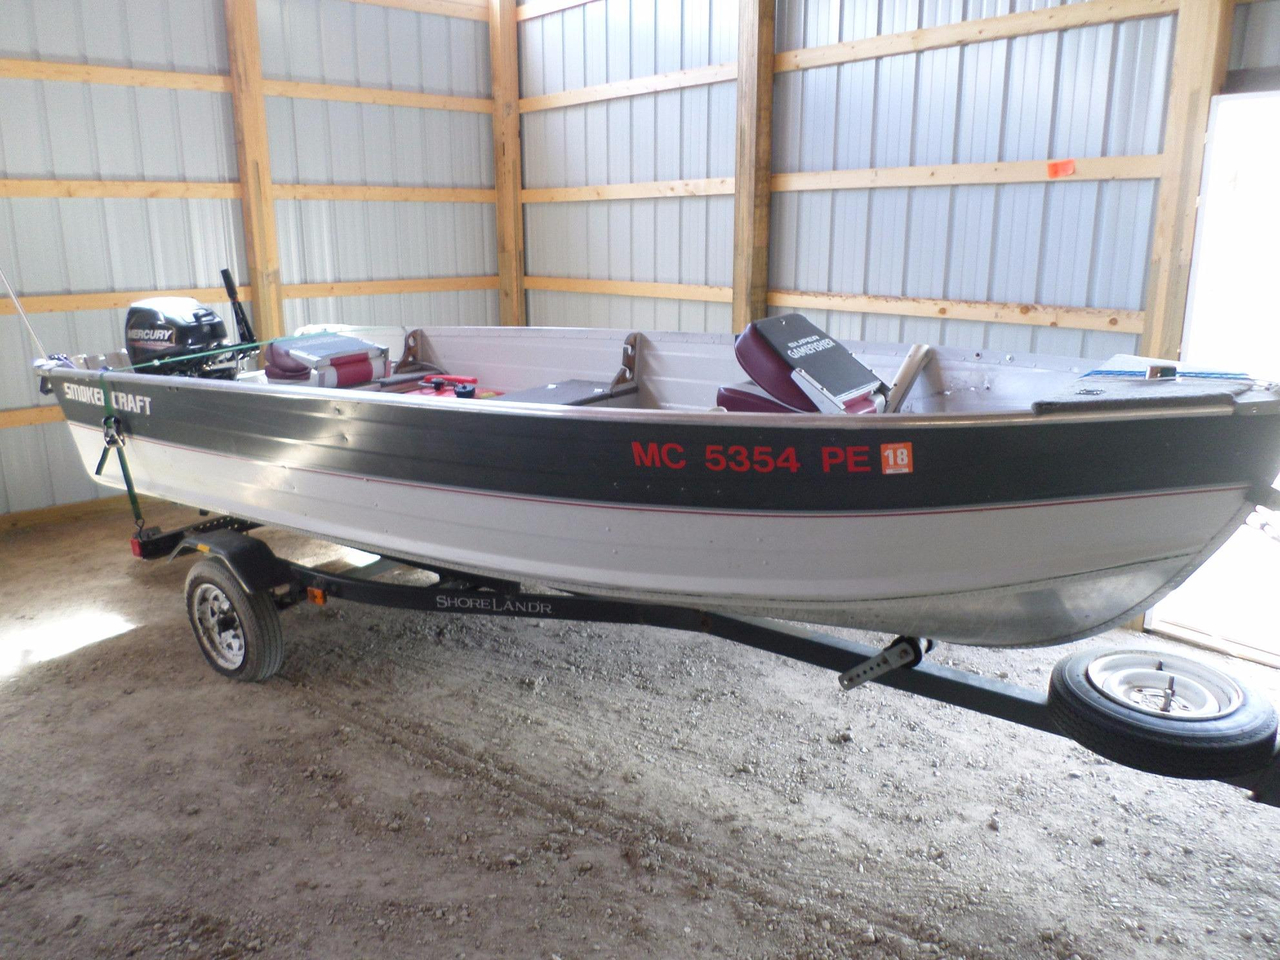 1990 used smoker craft 14 39 fishing freshwater fishing boat for Used aluminum fishing boats for sale in michigan